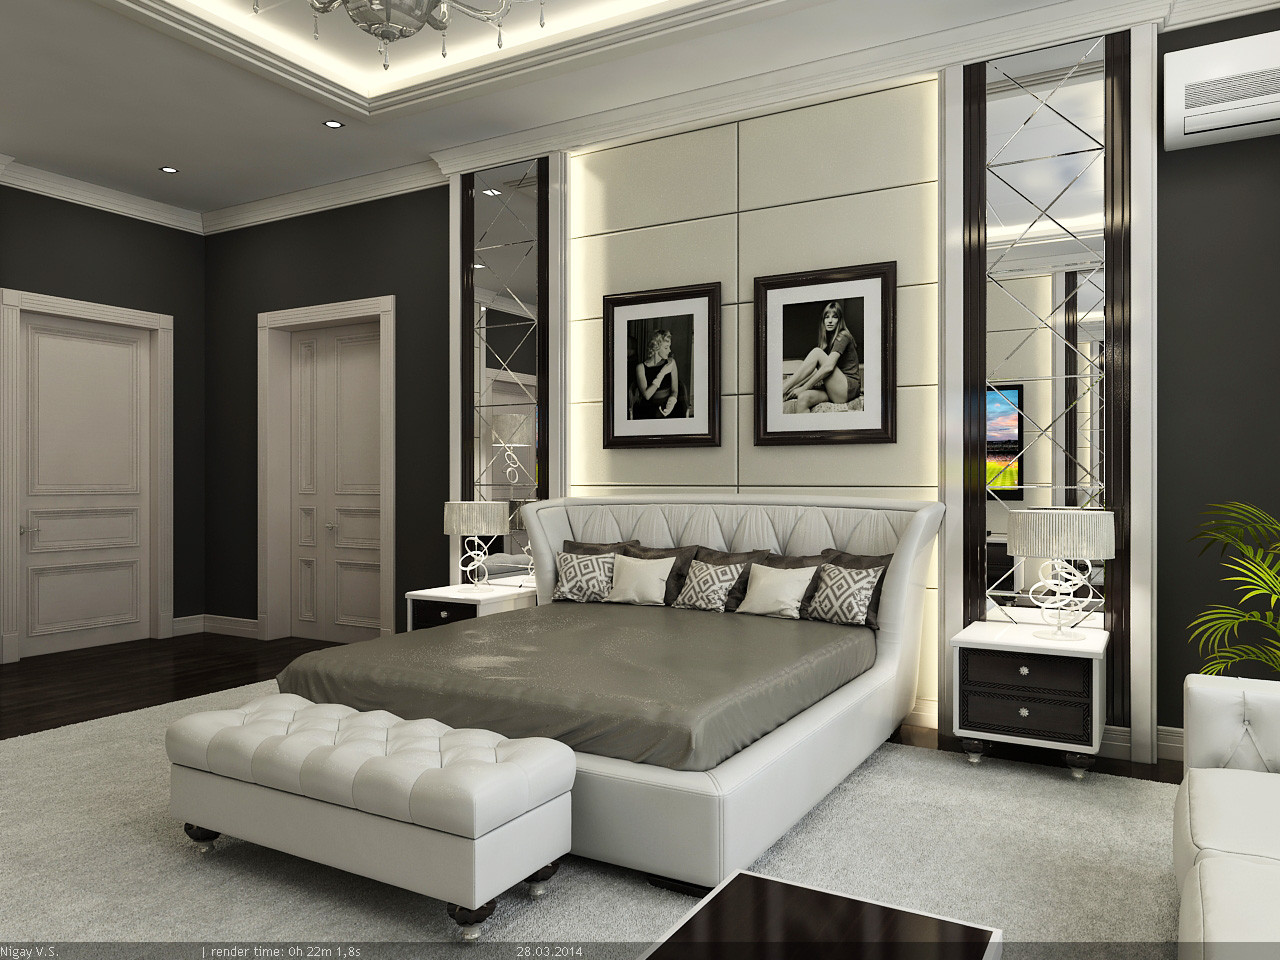 Interior master bedroom 3d model for 3d interior design online